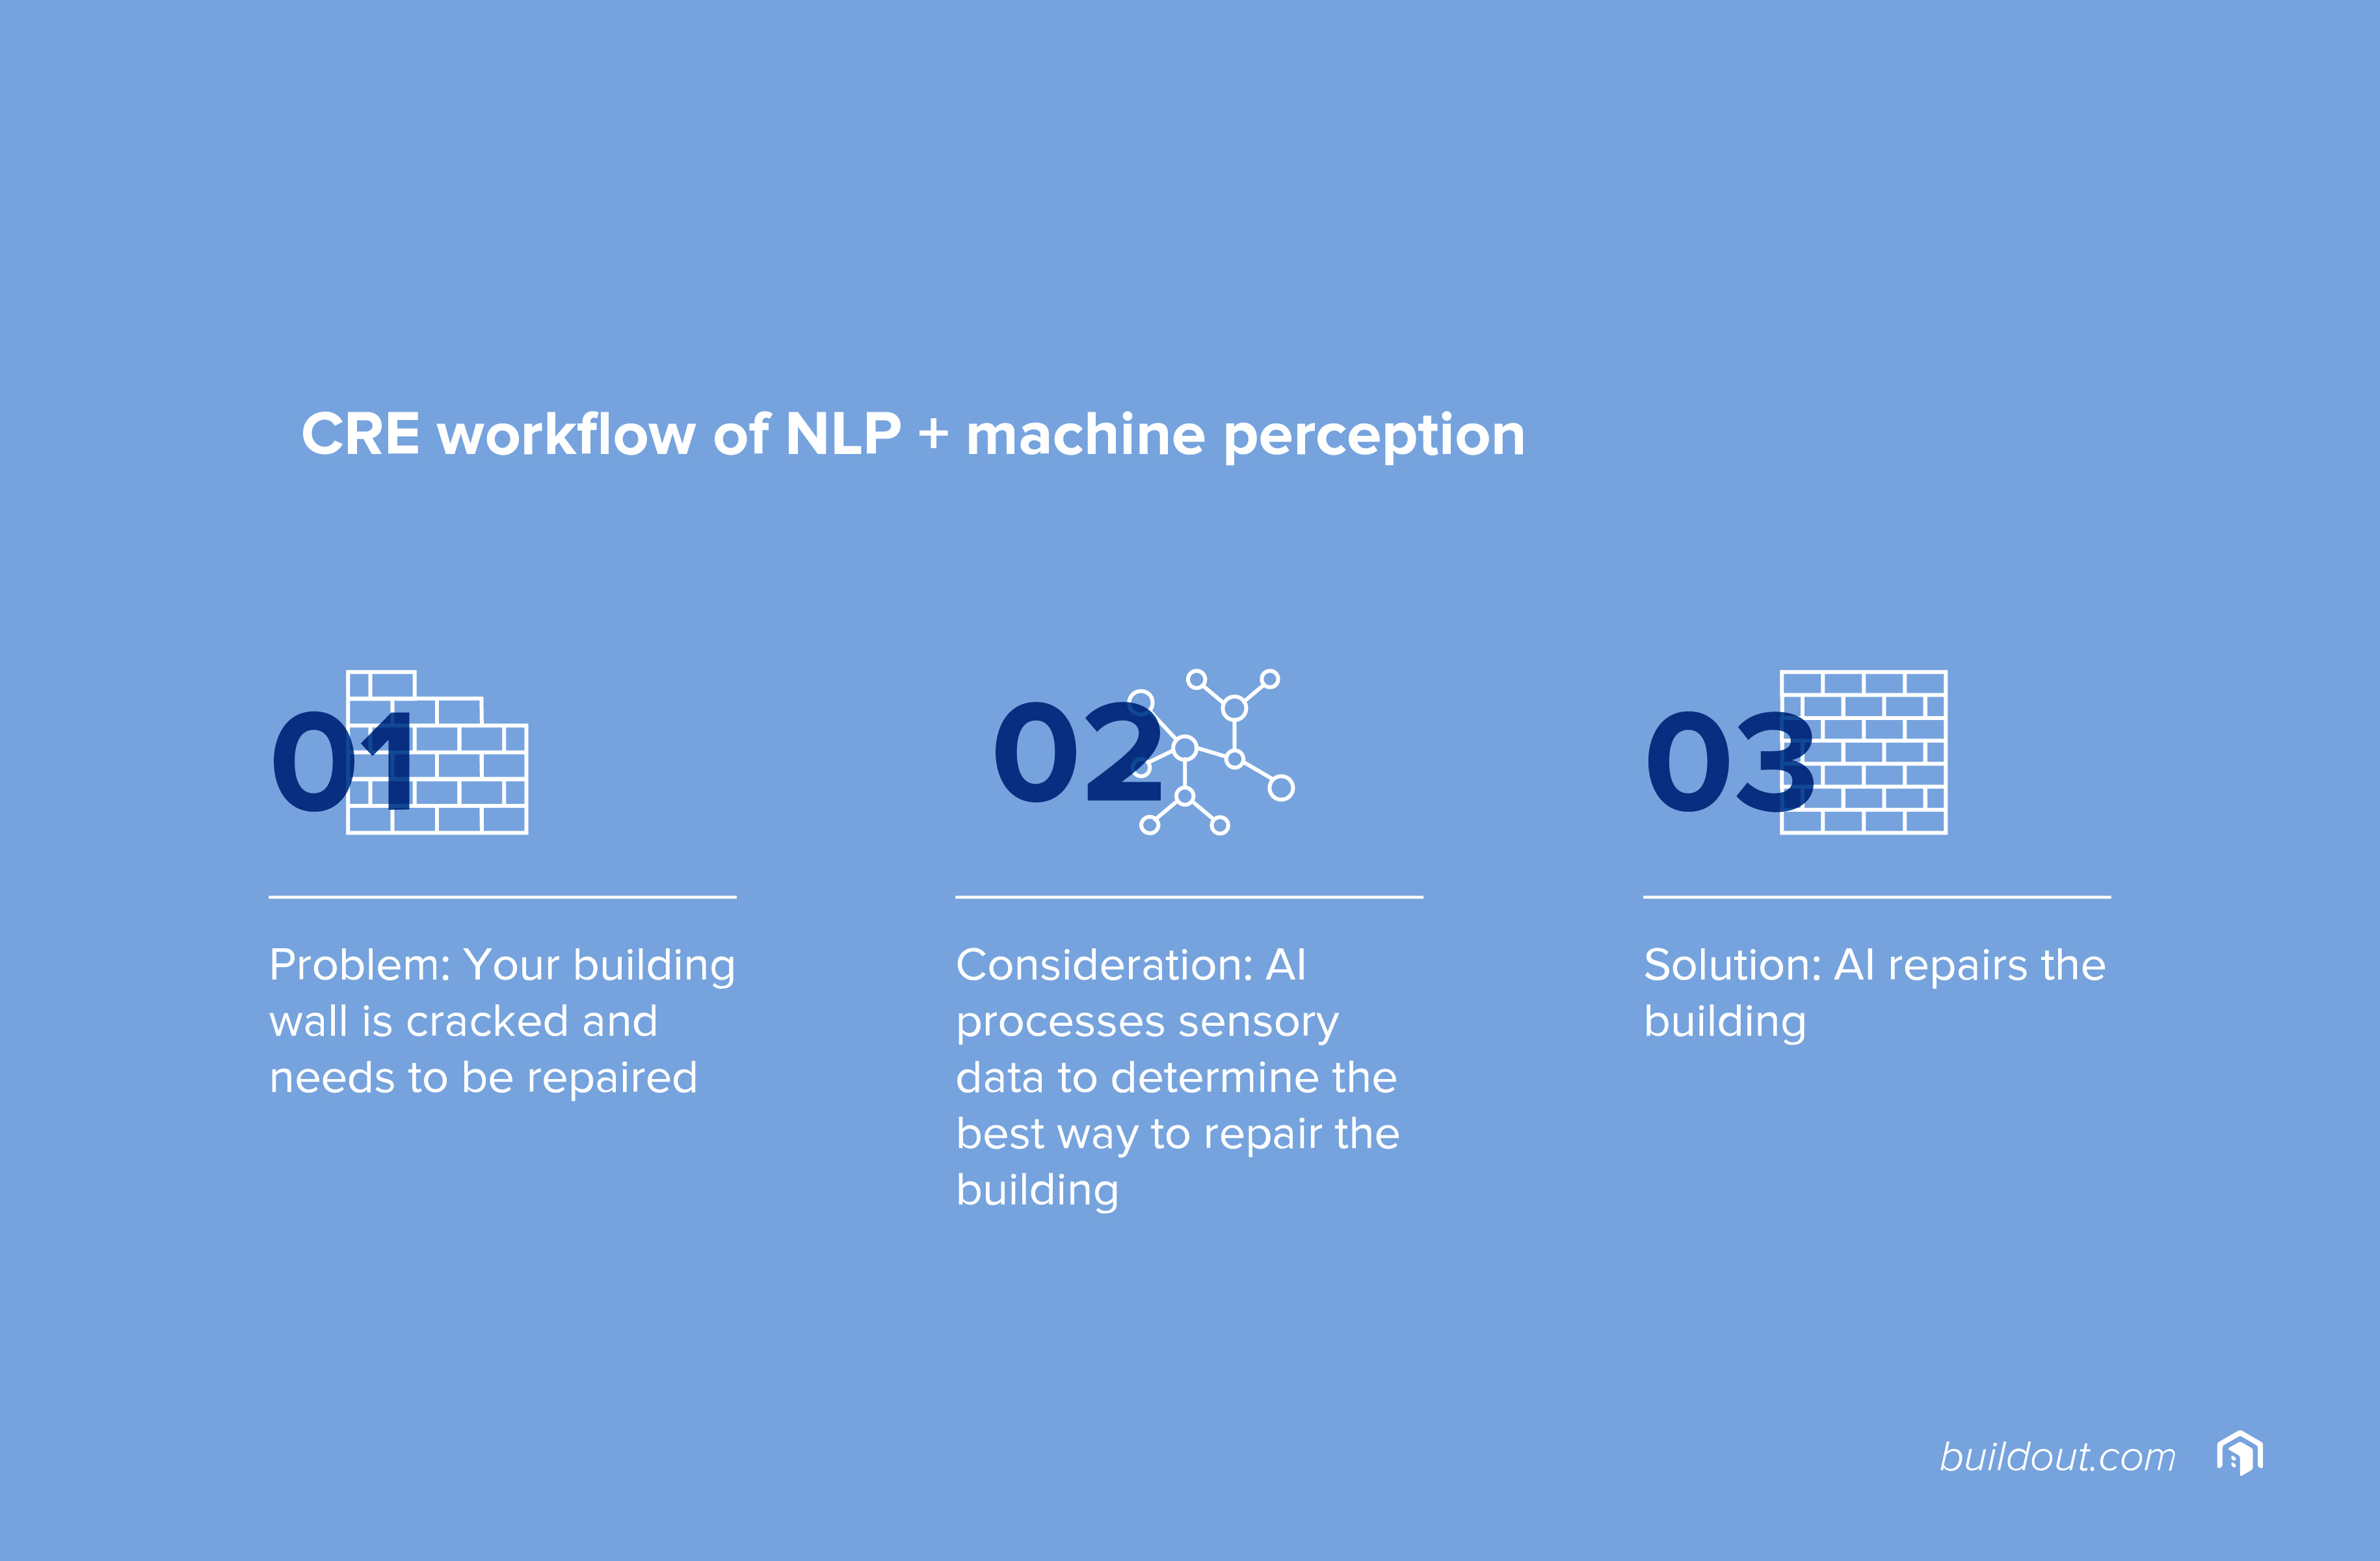 CRE workflow of NLP + machine perception